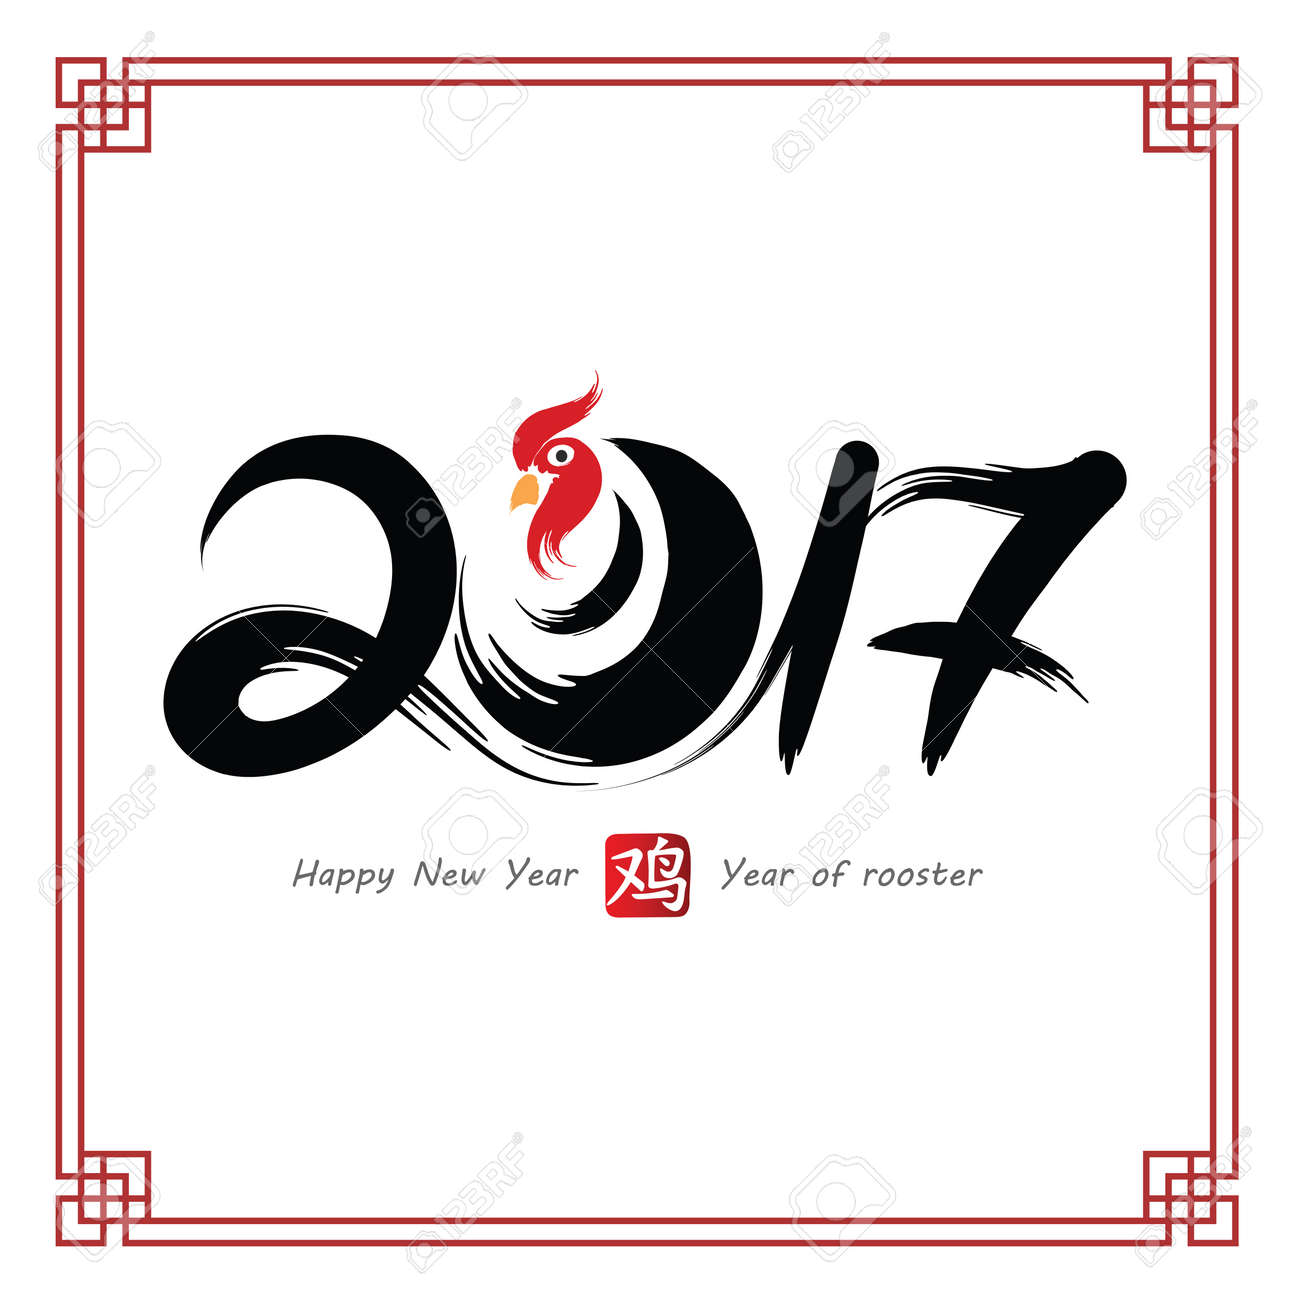 Chinese Calligraphy 2017, year of rooster and Chinese word mean rooster,vector illustration - 62060120